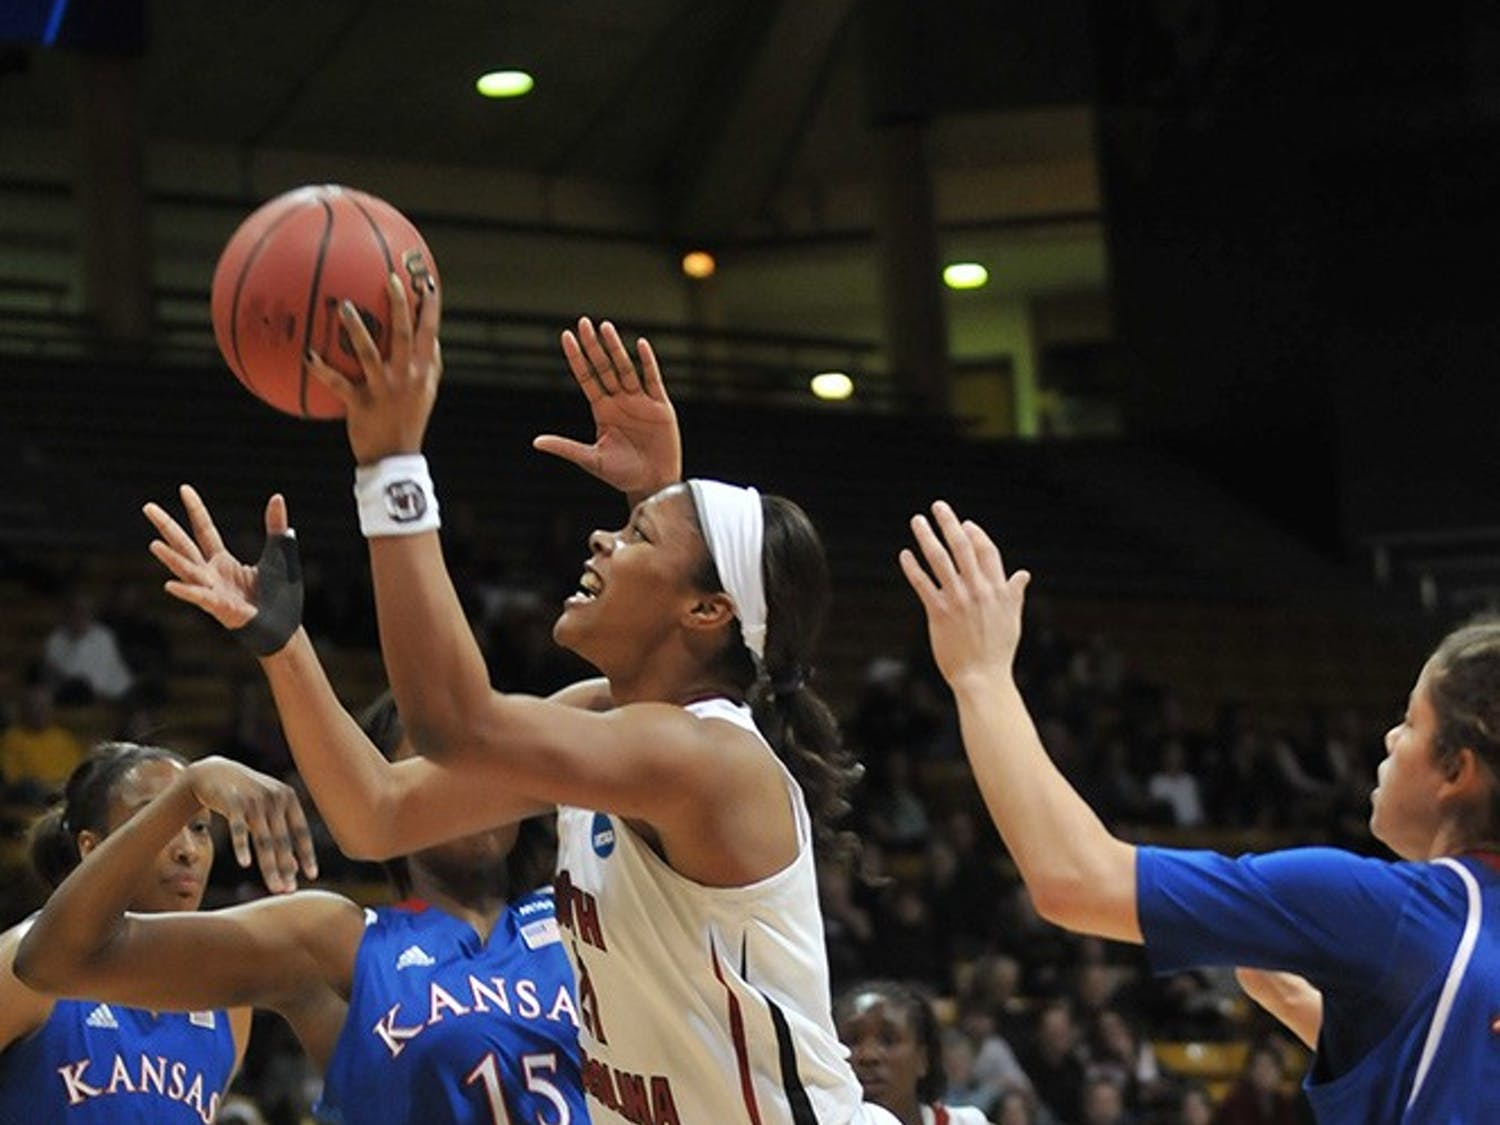 The women's basketball team fell 75-69 to Kansas.